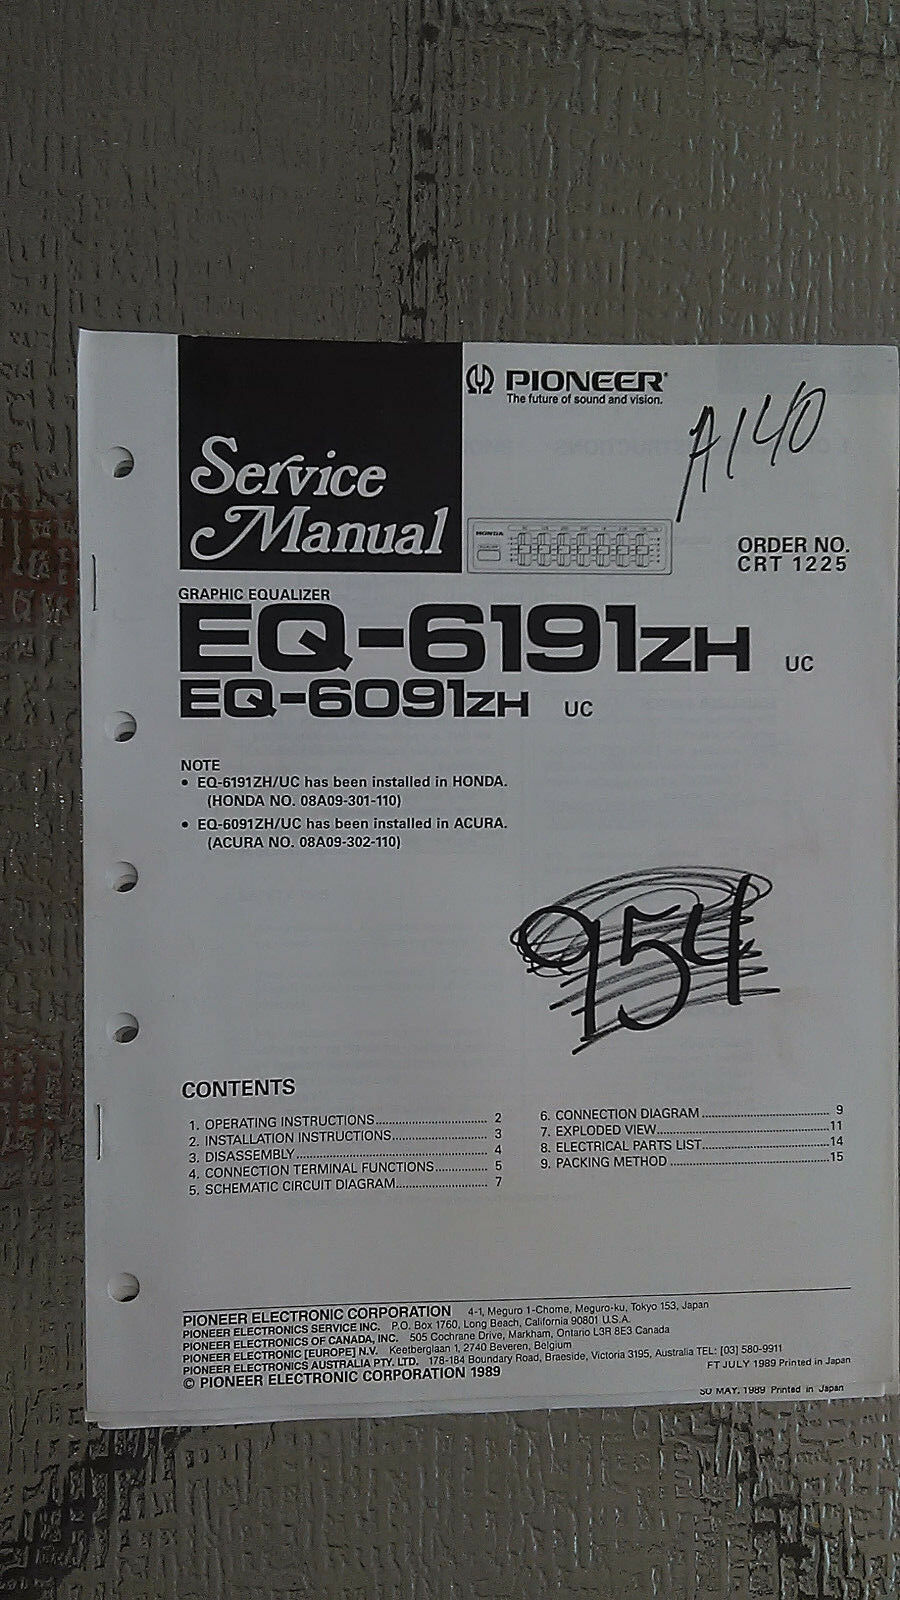 Pioneer eq 619zh 6091zh service manual original repair book stereo 1 of 1only 1 available asfbconference2016 Choice Image